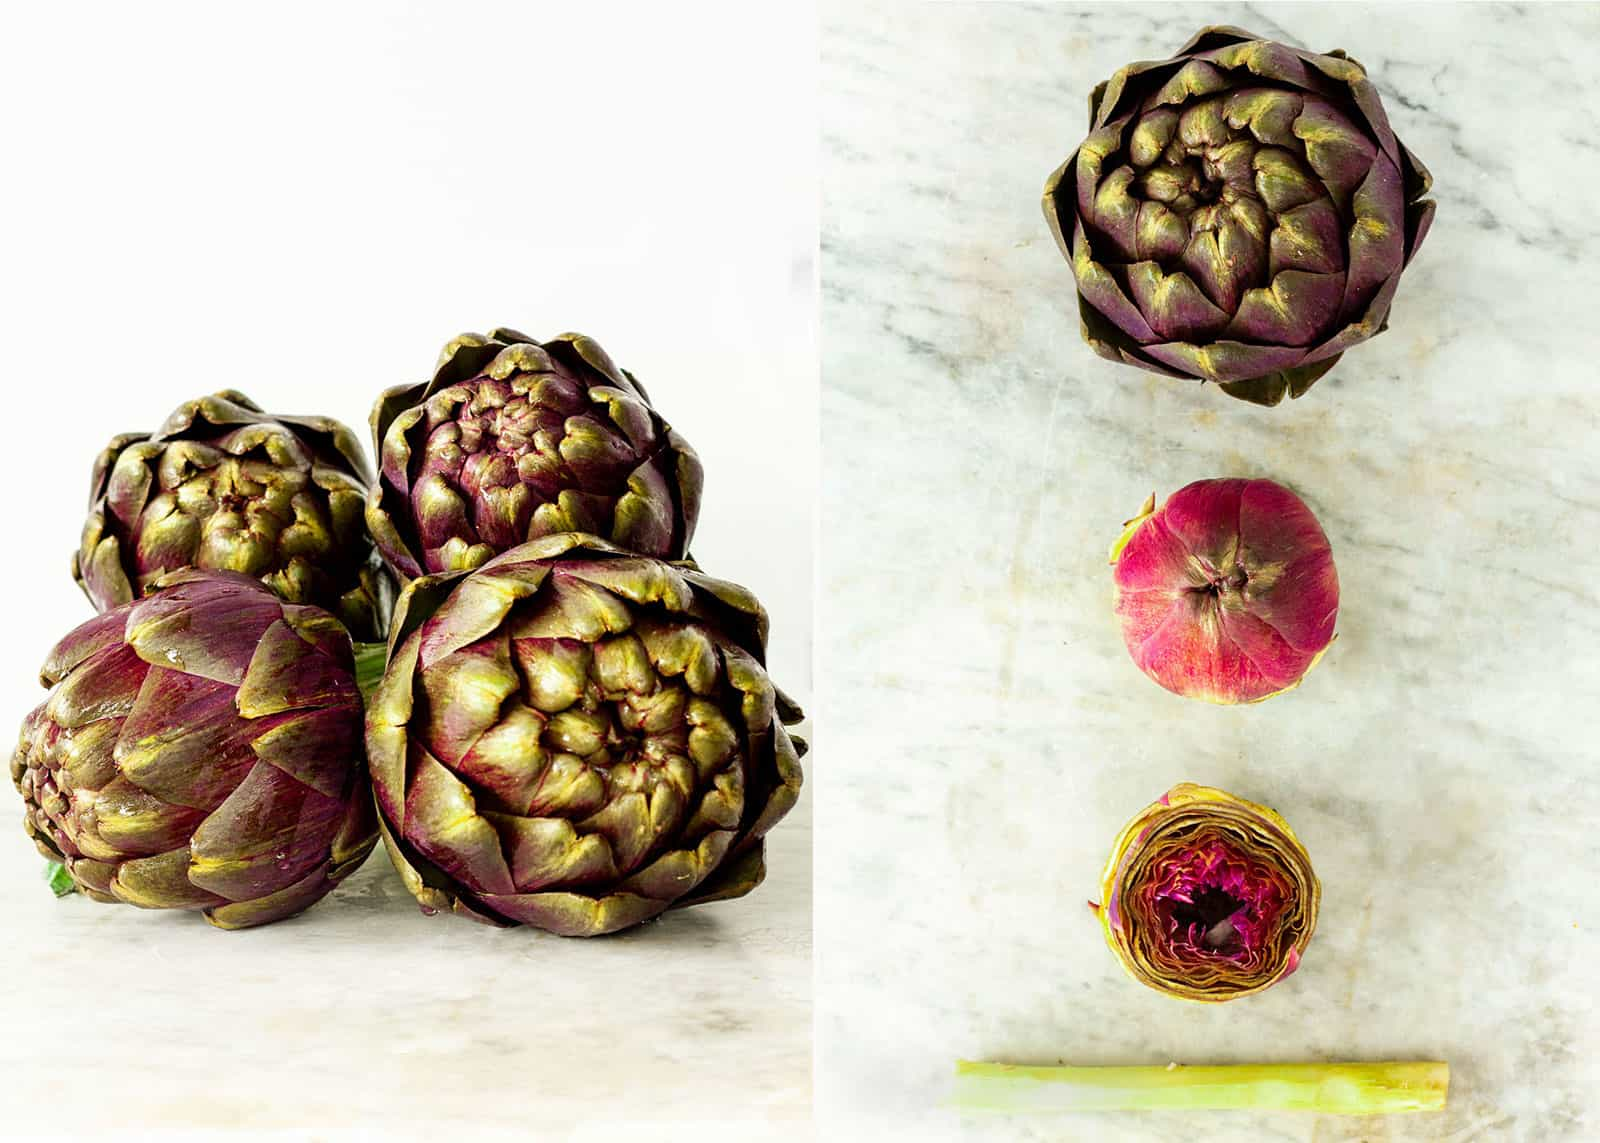 Artichokes in Jewish and Roman style - recipe